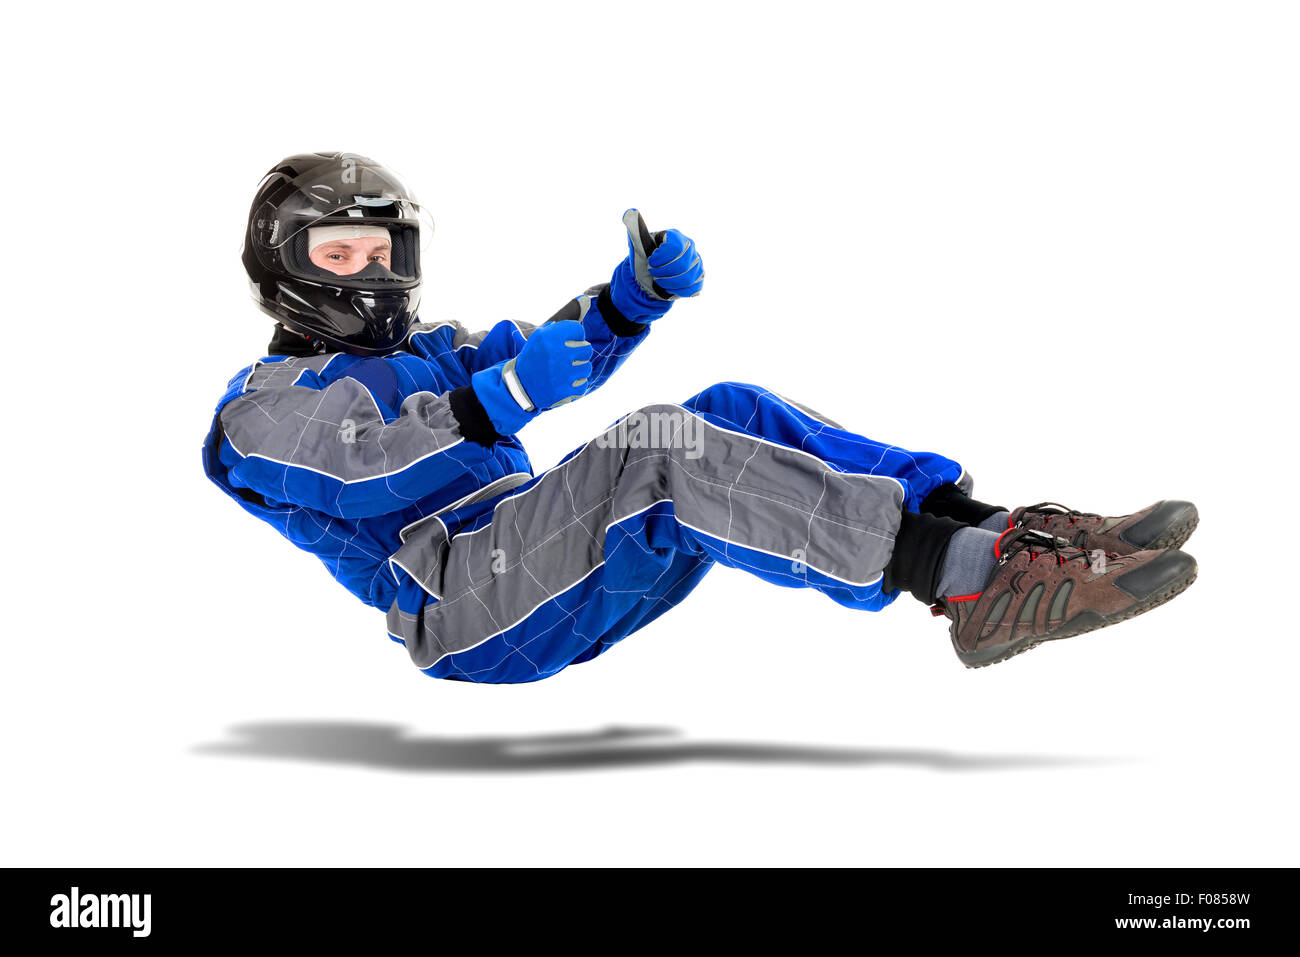 Racing driver posing in driving position in full gear isolated in white - Stock Image